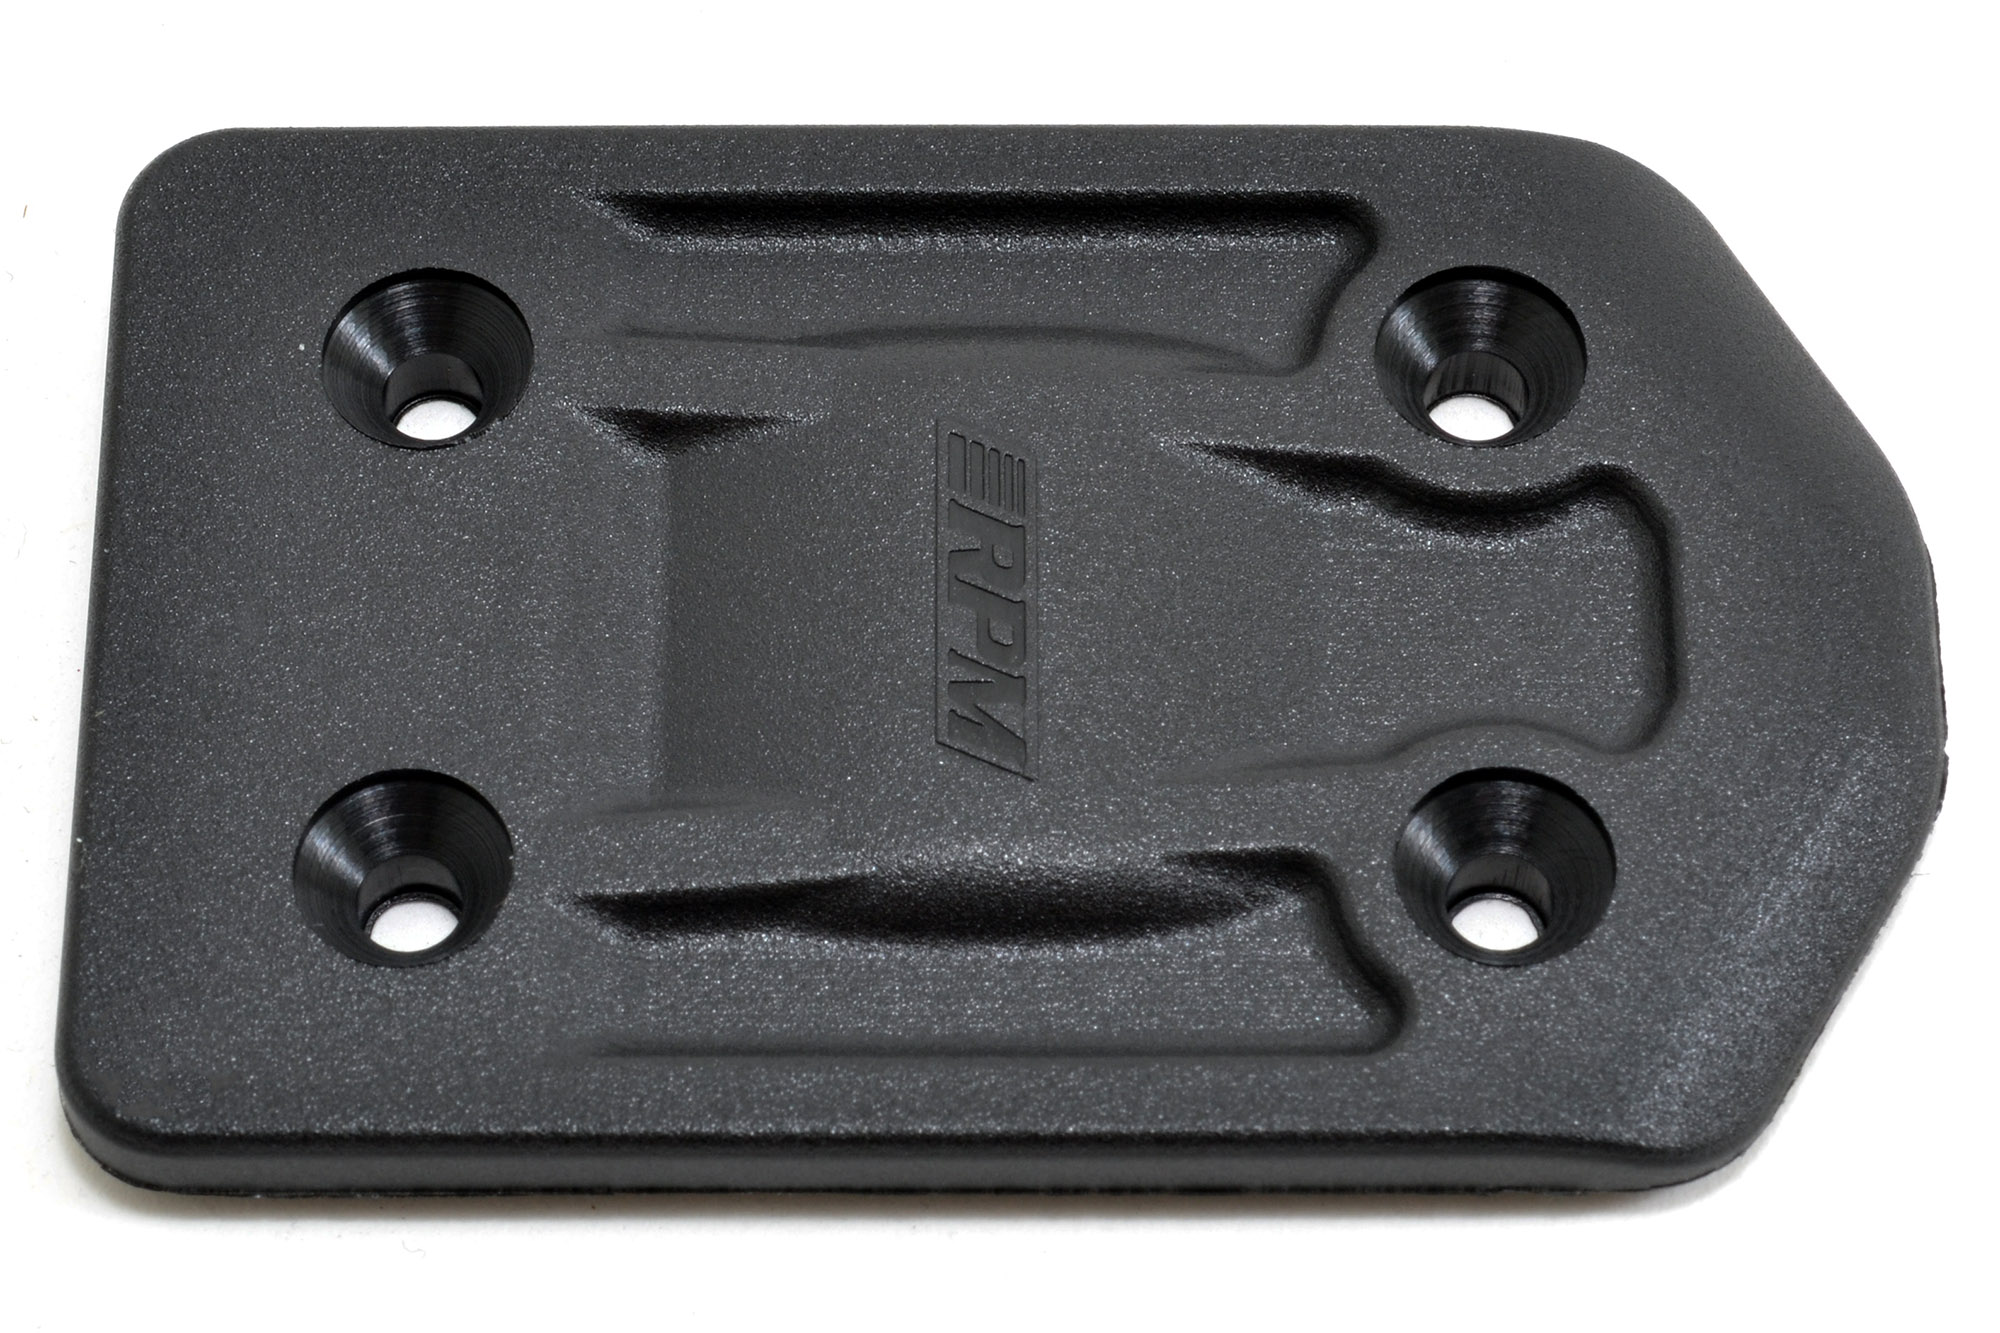 RPM Front Bumper And Skid Plates For Arrma Kraton 6S Vehicles